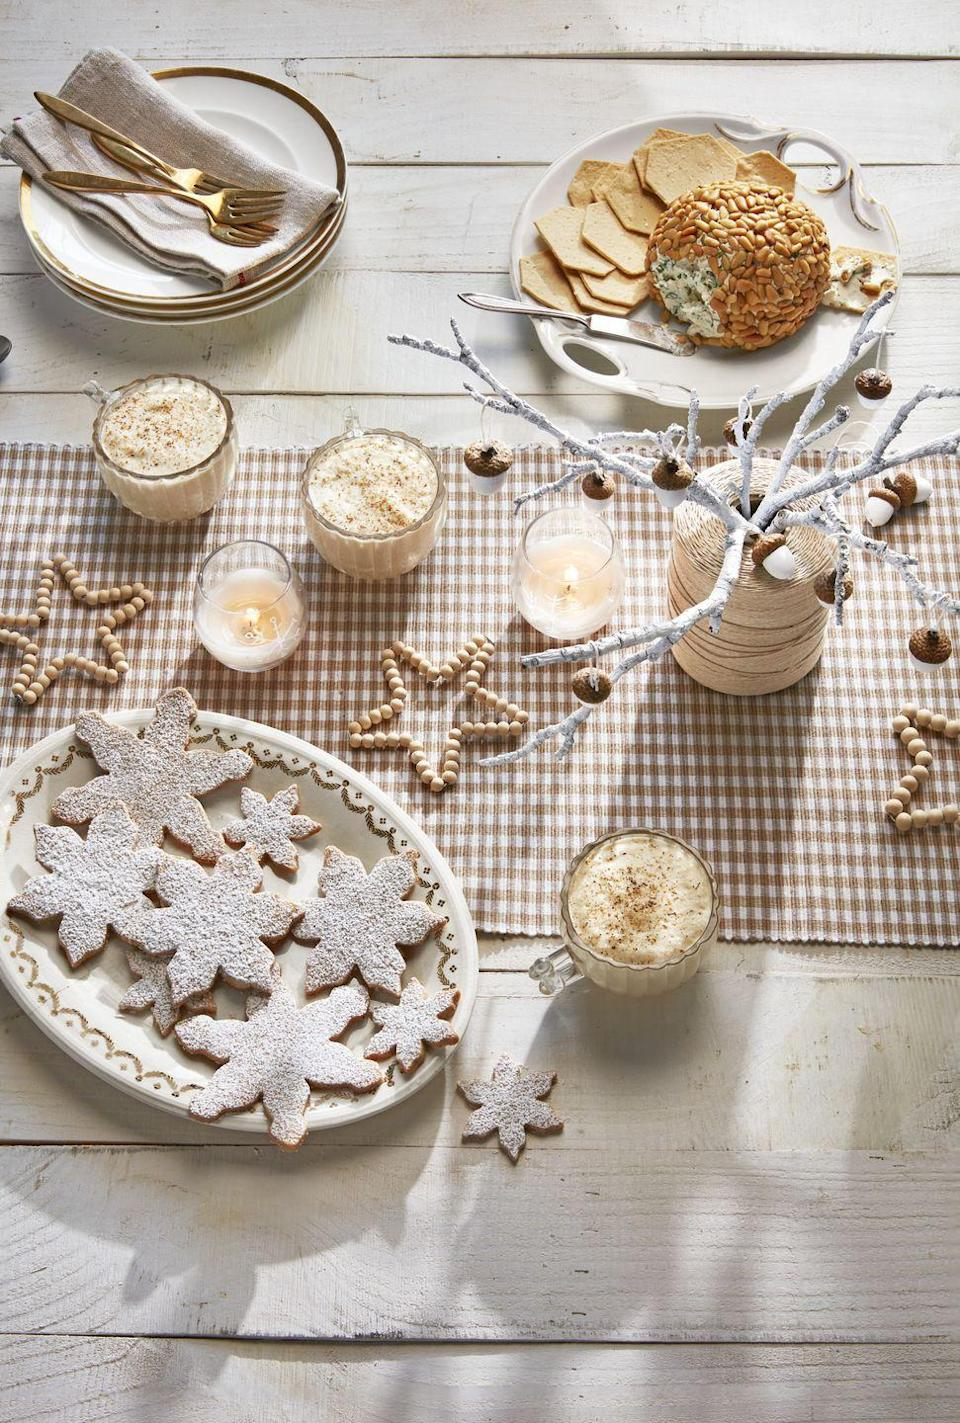 "<p>Textured neutrals and snowy motifs evoke a Scandinavian spirit on this dining table. To make the wooden bead stars, draw a five-point loop in one end of a piece of silver craft wire. Thread beads on wire, bending wire per drawing as you go. Feed loose end of wire through loop, crimp, and cut. As for the acorn tree centerpiece, paint nuts with white craft paint, leaving caps natural. Attach a loop of twine with hot glue. Hang from a spray-painted branch set inside a spool of twine. </p><p><a class=""link rapid-noclick-resp"" href=""https://www.amazon.com/DICOBD-150pcs-Natural-Jewelry-Decoration/dp/B07S8TVCDG?tag=syn-yahoo-20&ascsubtag=%5Bartid%7C10050.g.644%5Bsrc%7Cyahoo-us"" rel=""nofollow noopener"" target=""_blank"" data-ylk=""slk:SHOP WOODEN BEADS"">SHOP WOODEN BEADS</a></p>"